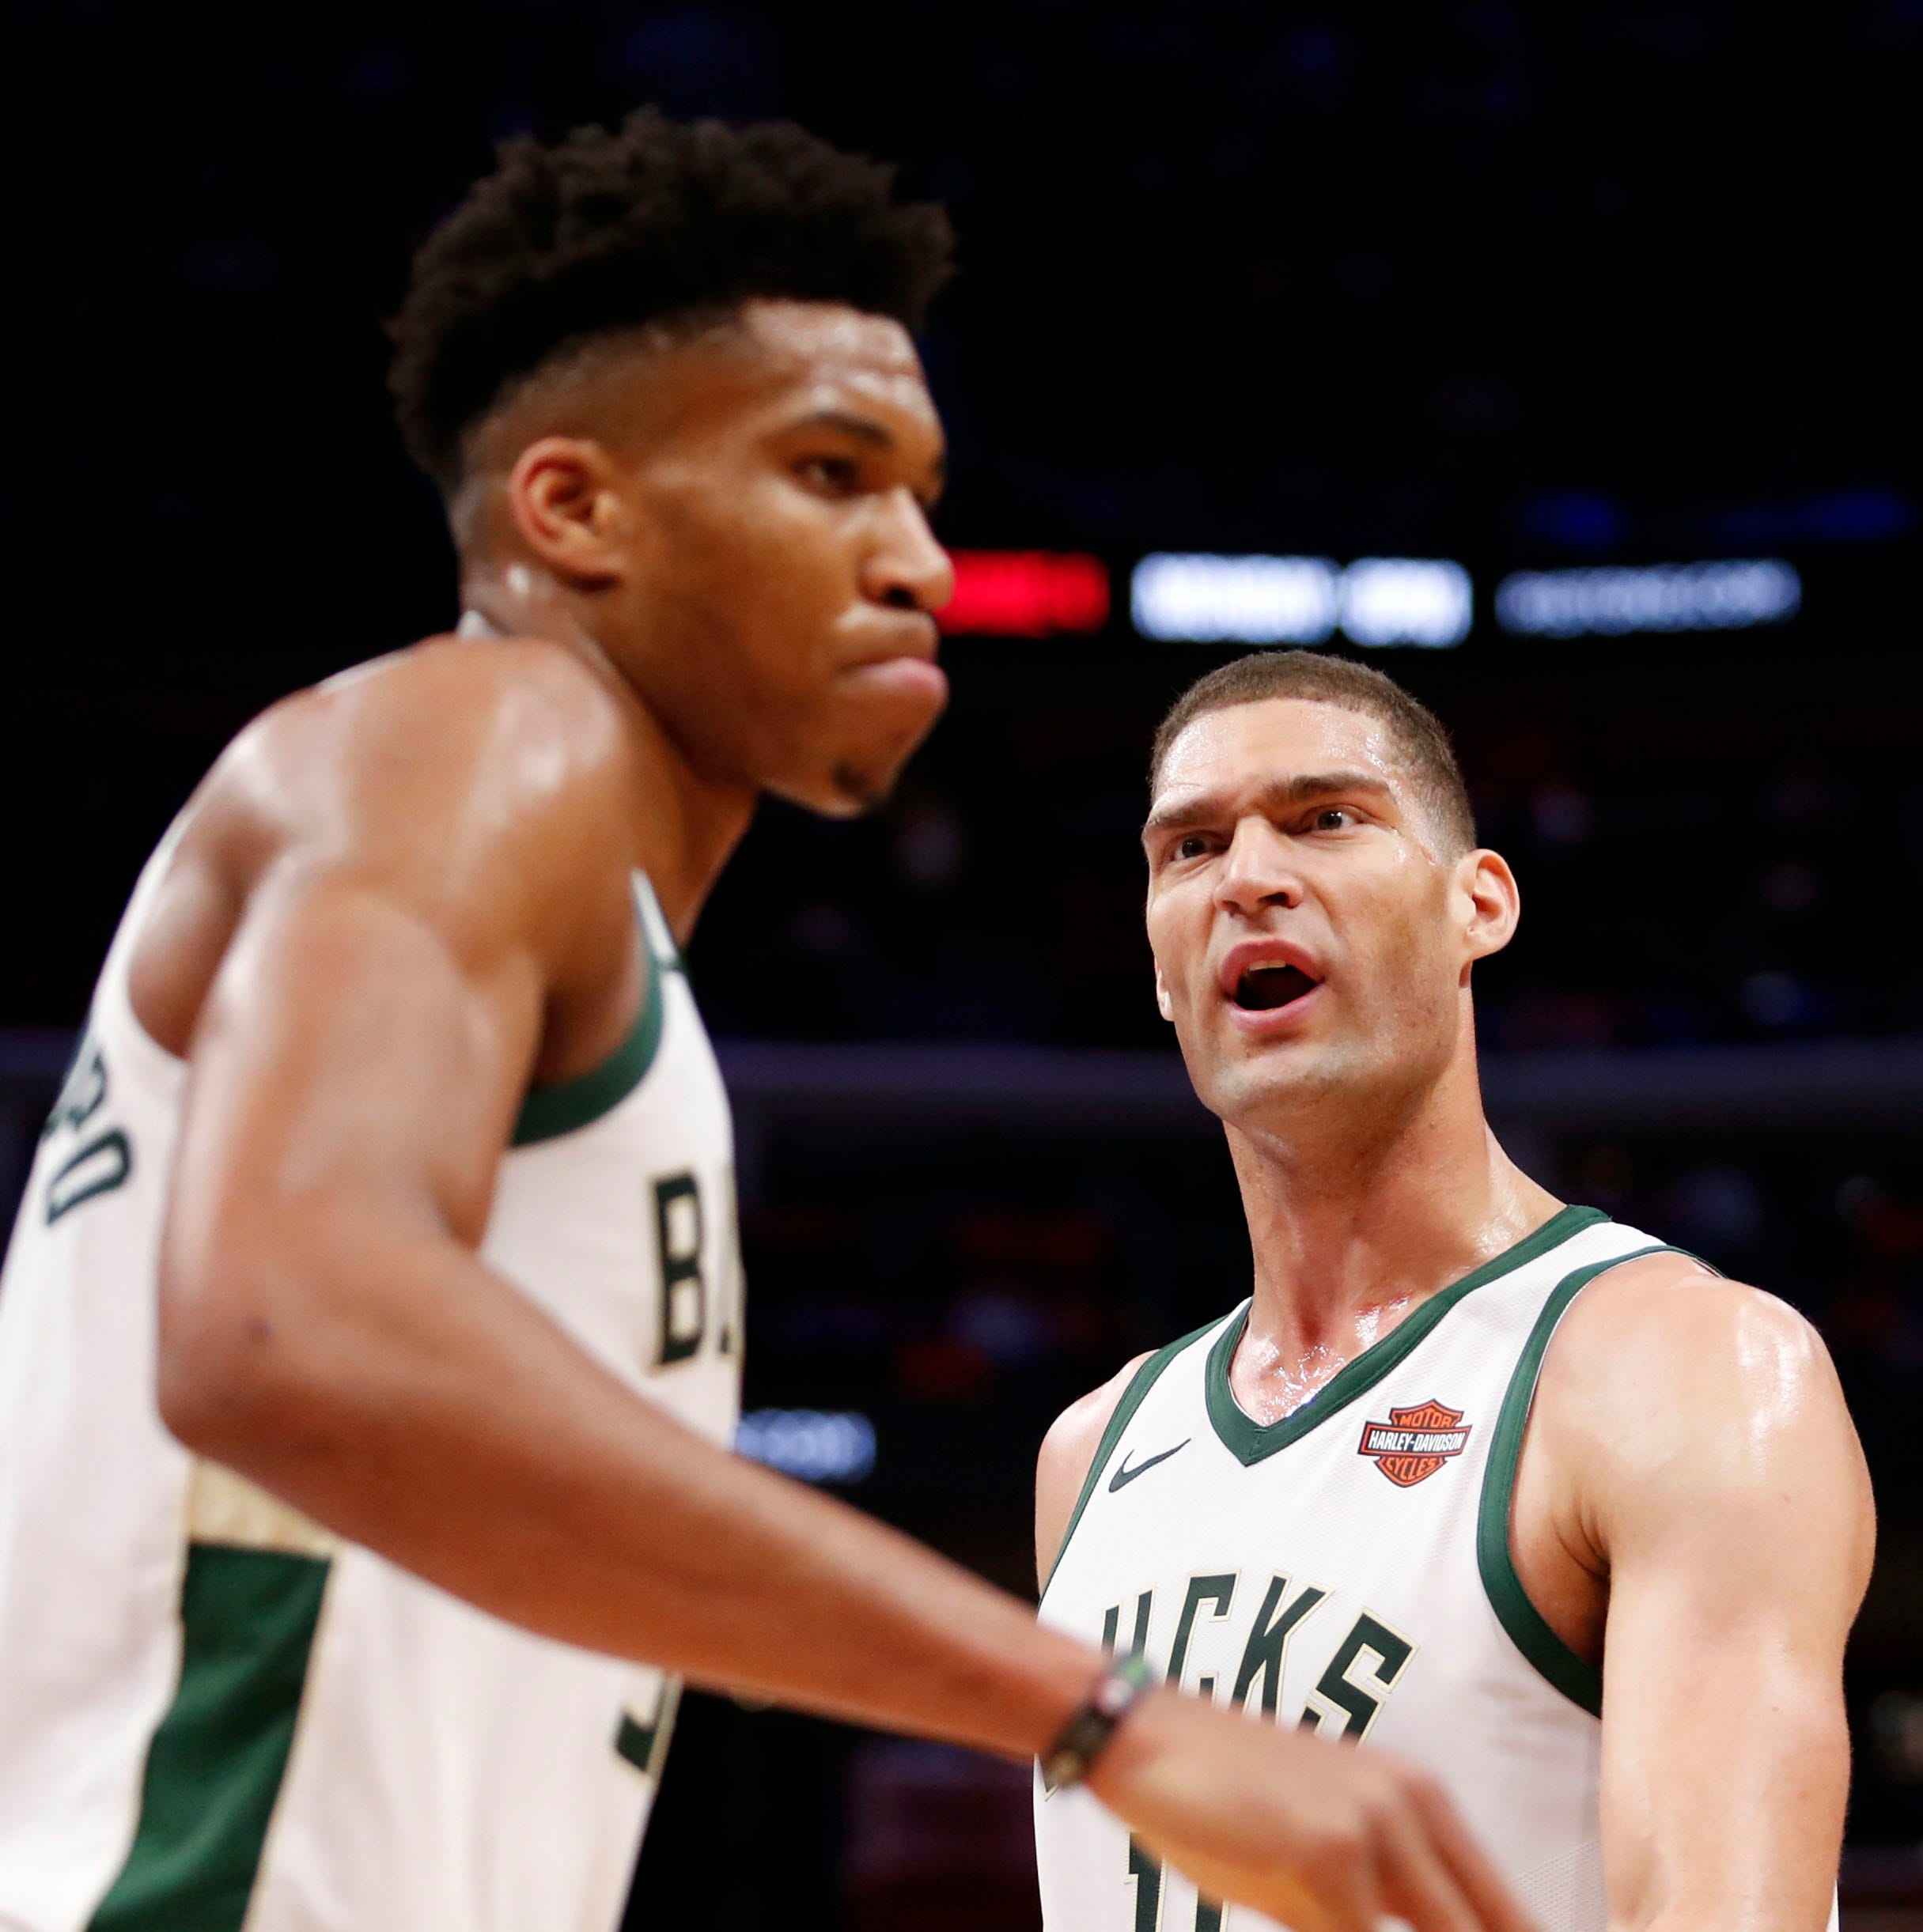 If Bucks sweep, they'd not only end a drought, but buy some time off